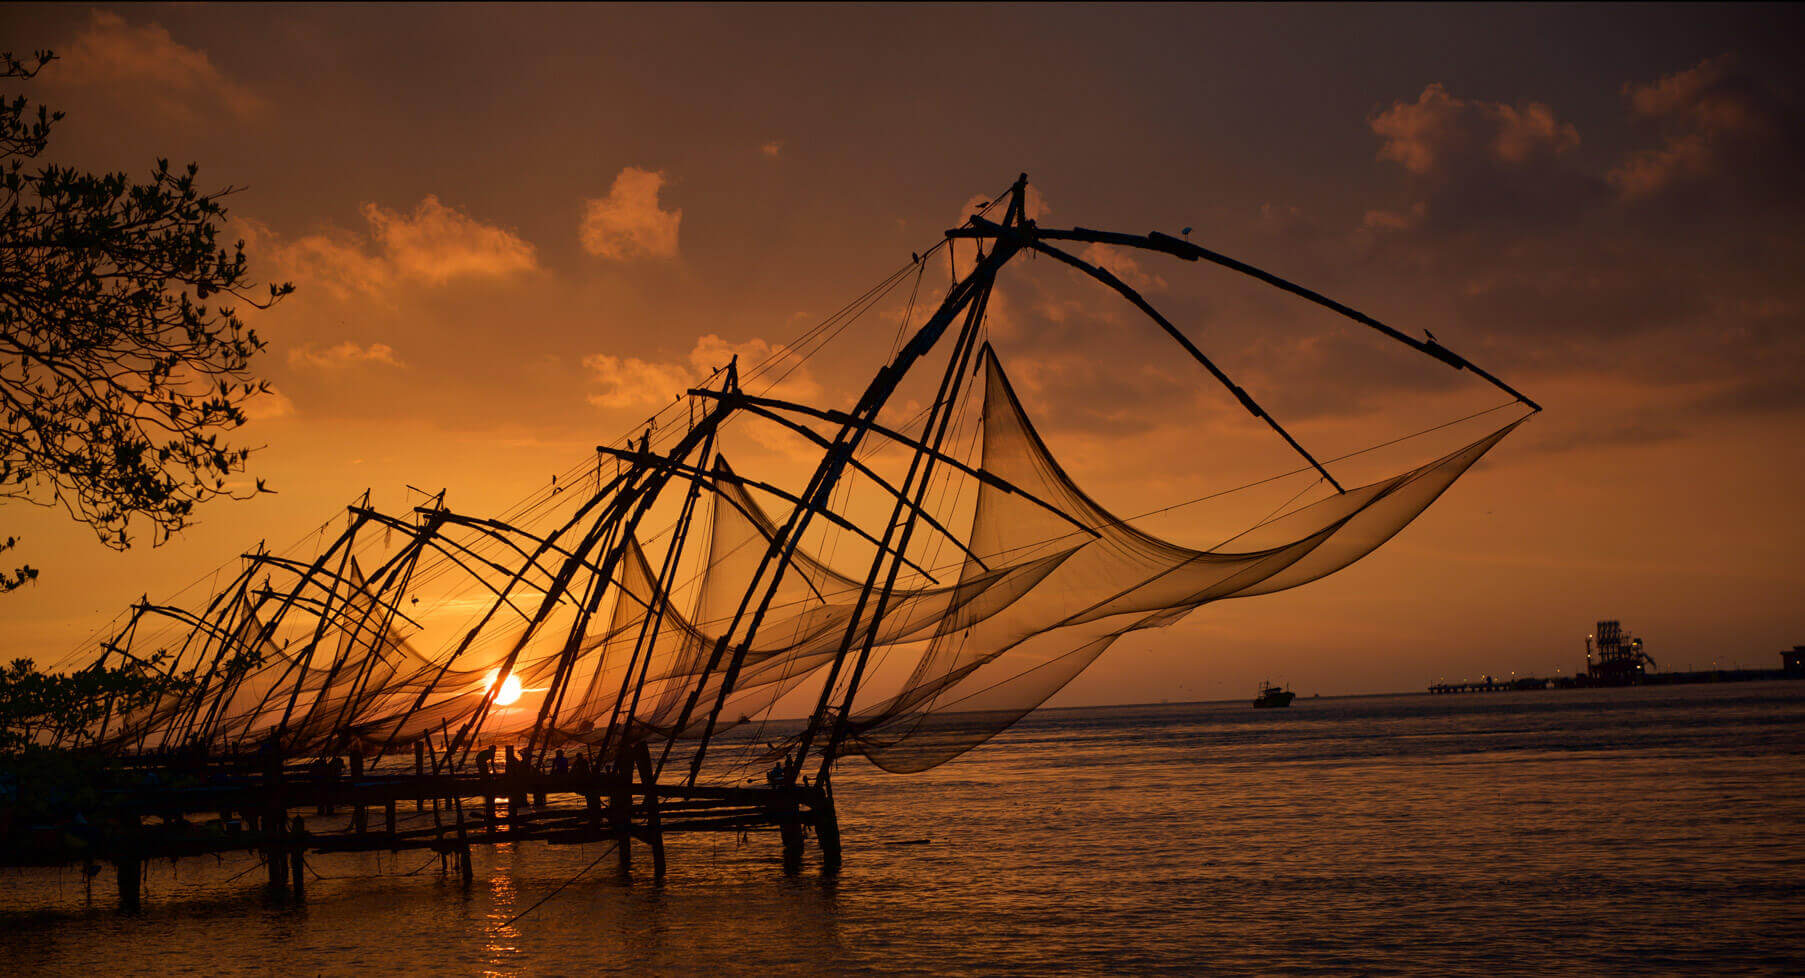 Kerala is God's own country and a must-see in the world. This paradise in India has mounta...